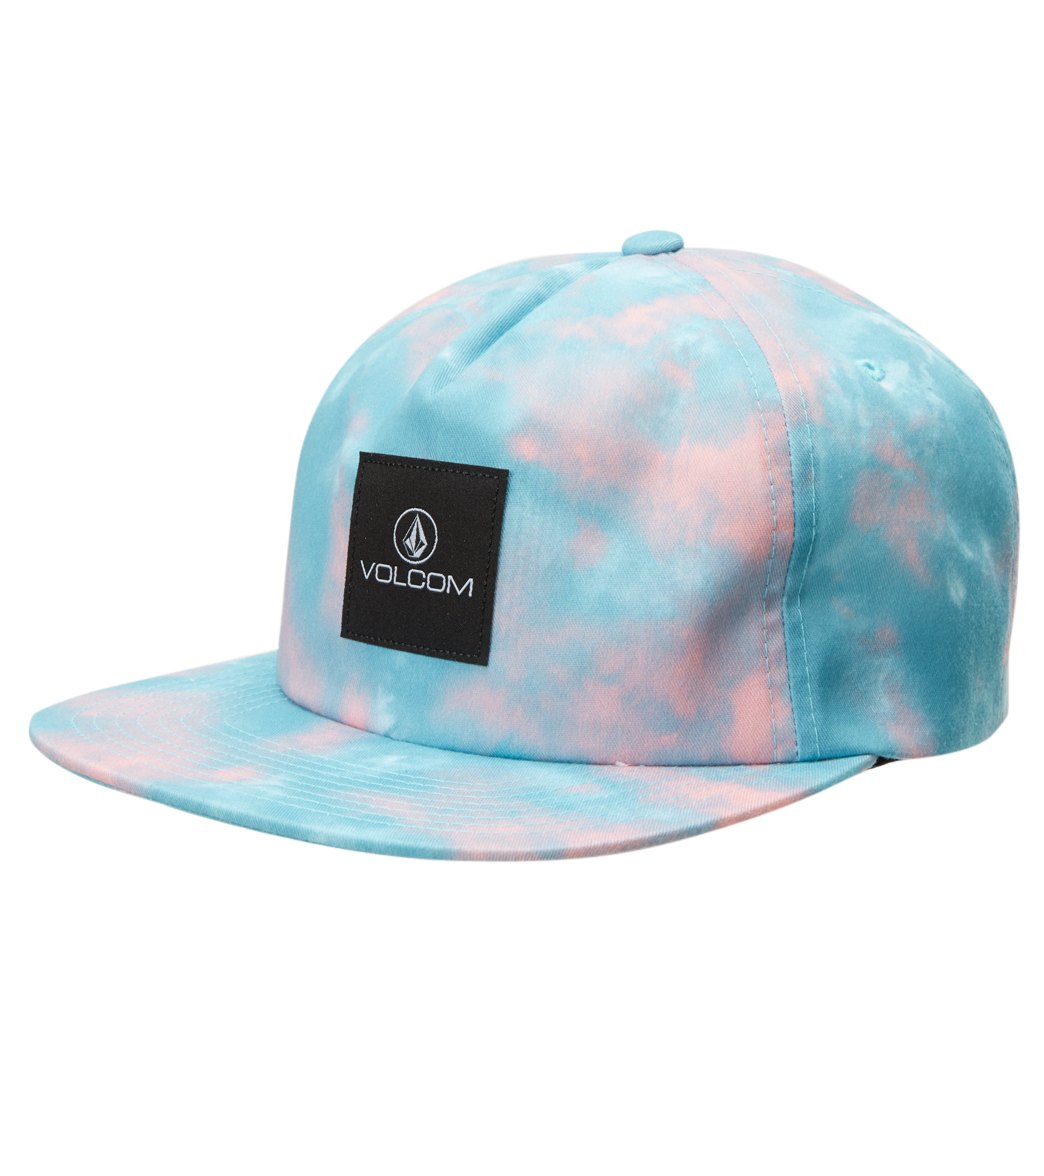 9a5385a58002a Volcom Women s Tie Dye Snapback Hat at SwimOutlet.com